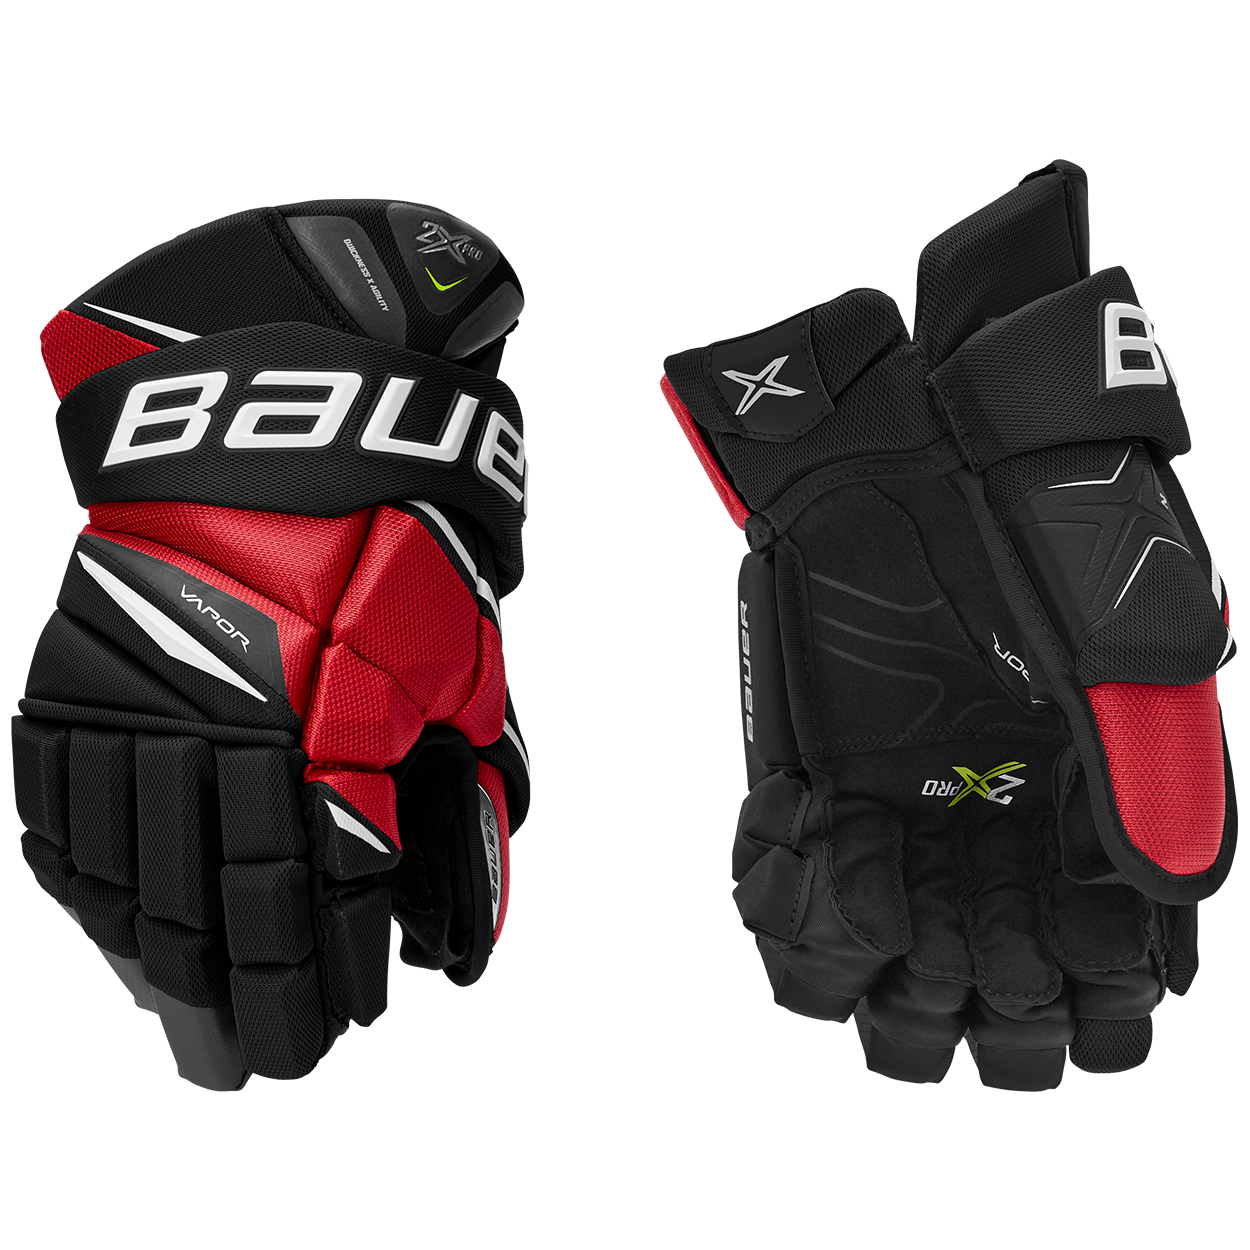 VAPOR 2X PRO Glove Senior,Black Red,medium